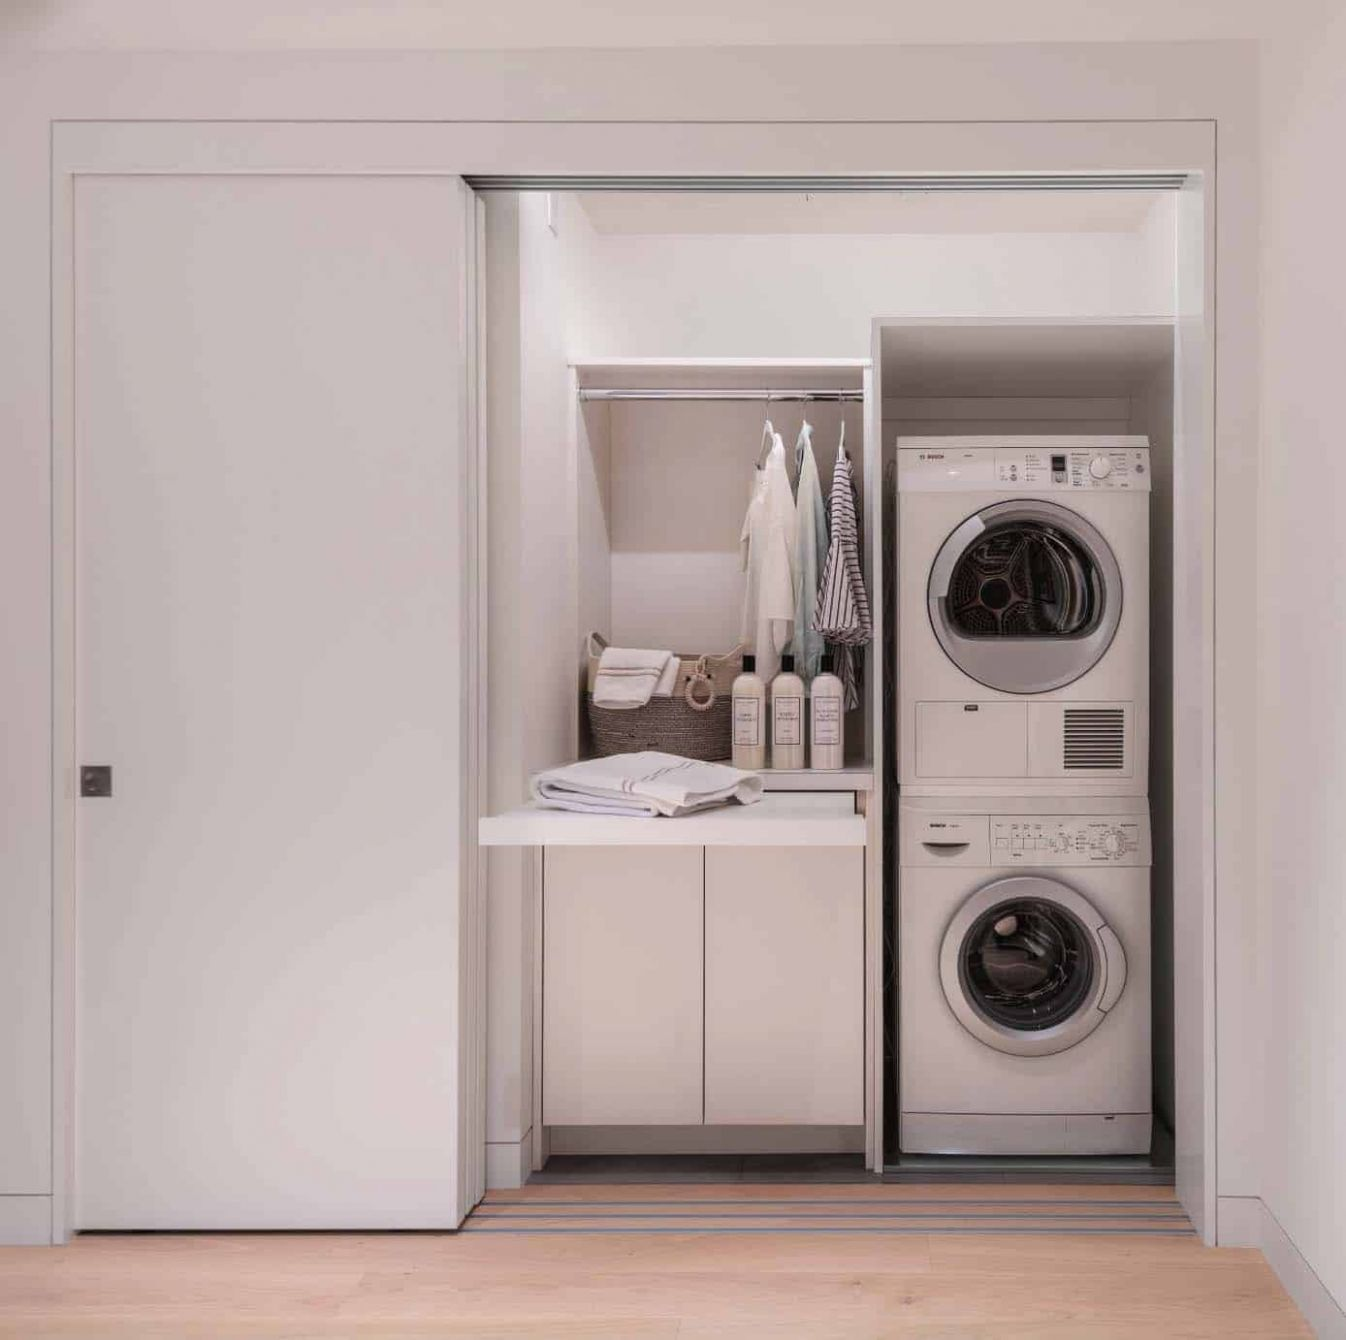 12 Functional And Stylish Laundry Room Design Ideas To Inspire - laundry room ideas with broom closet